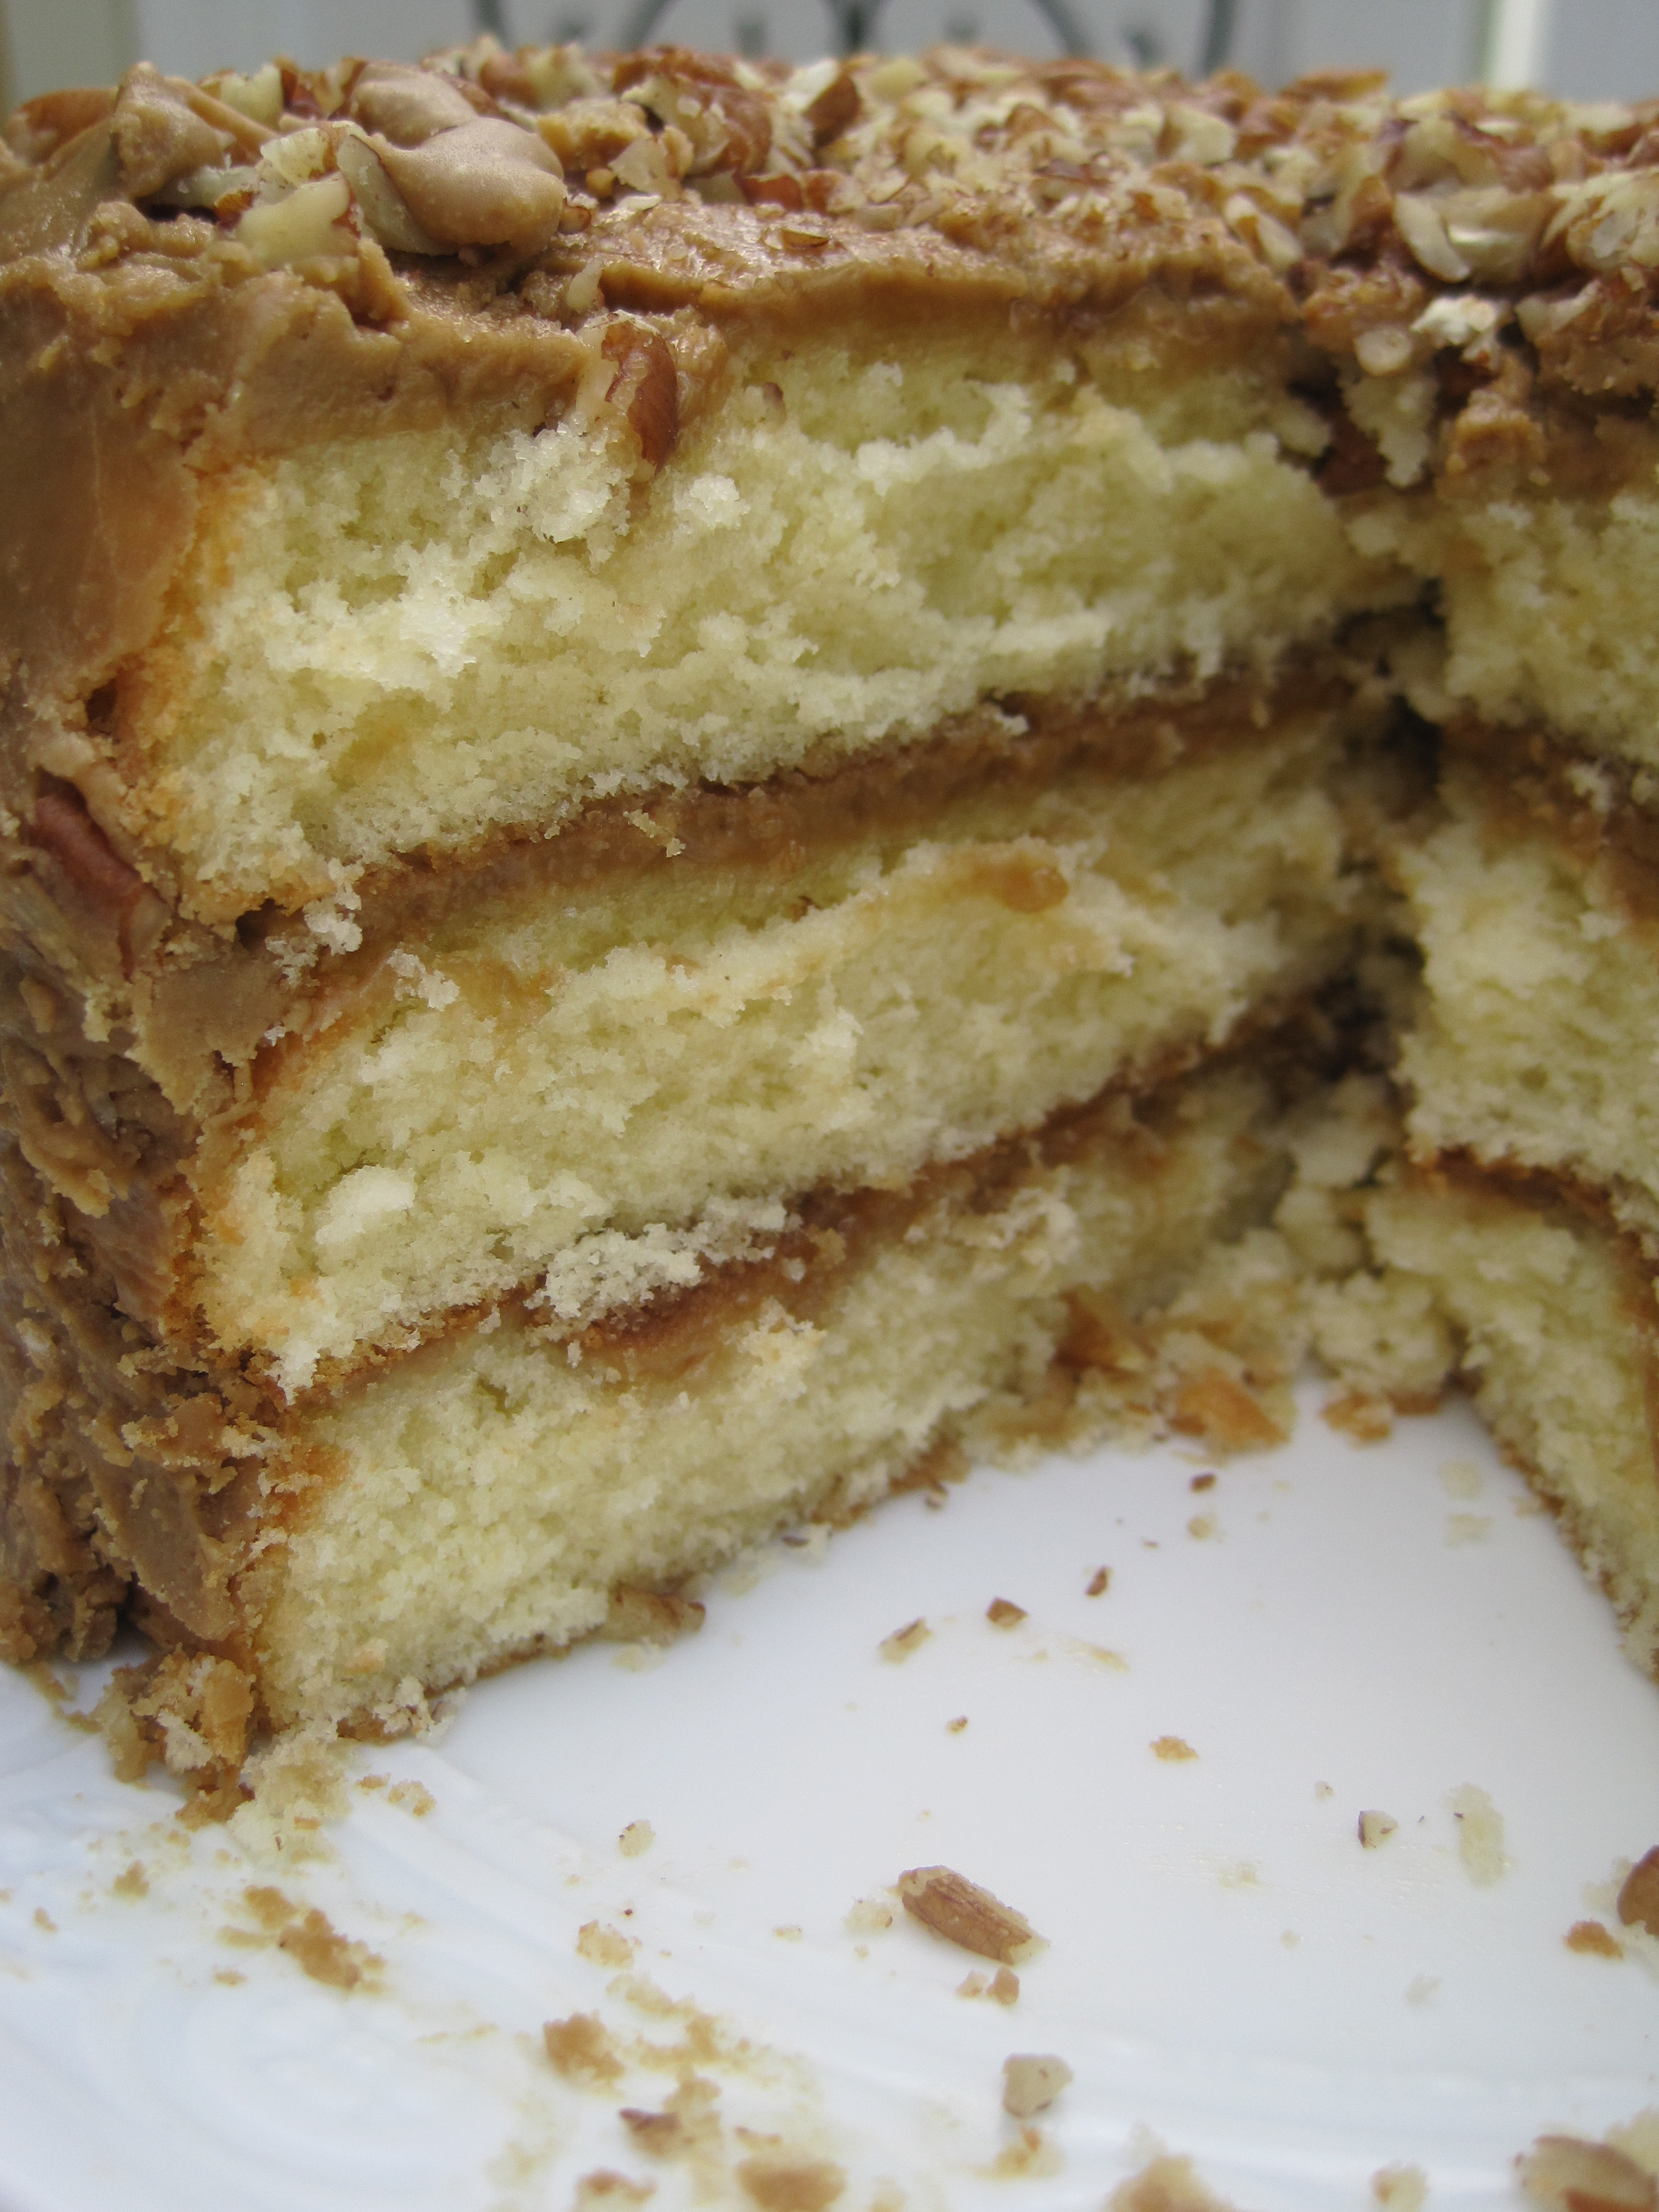 What To Use Instead Of Flour For A Cake